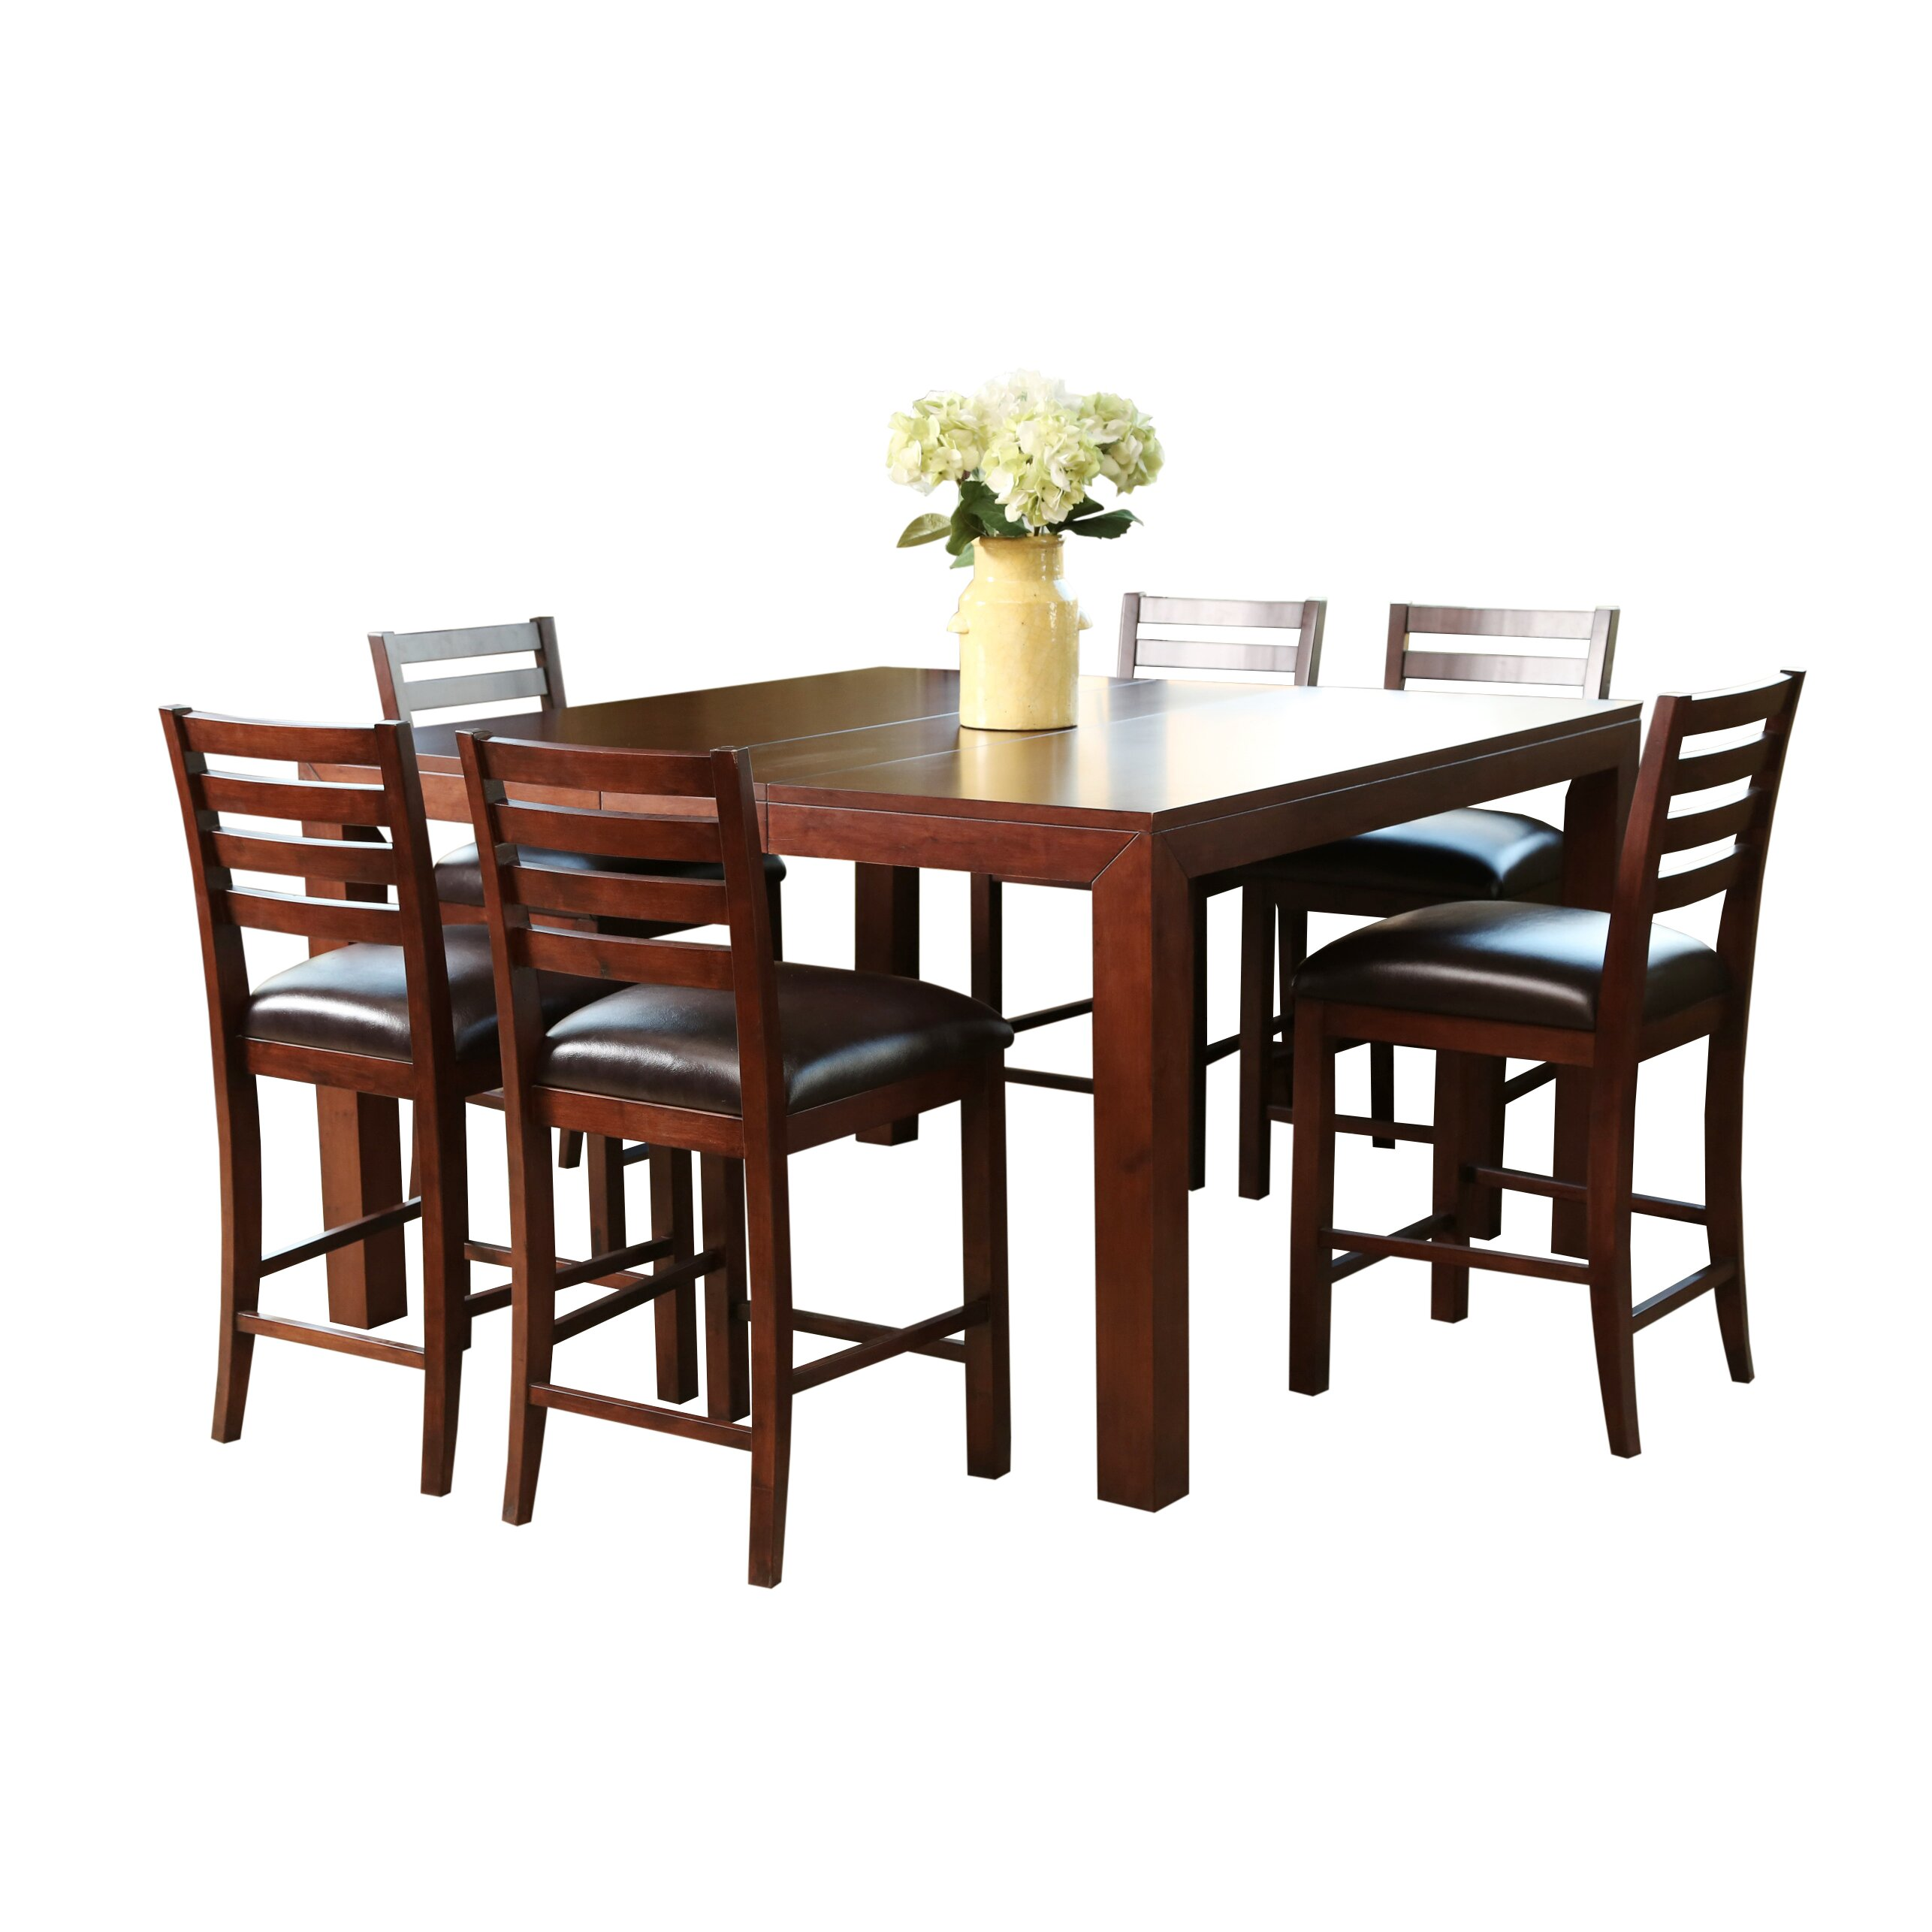 7 Piece Counter Height Dining Room Sets: East West Chelsea 7 Piece Counter Height Dining Set Amp